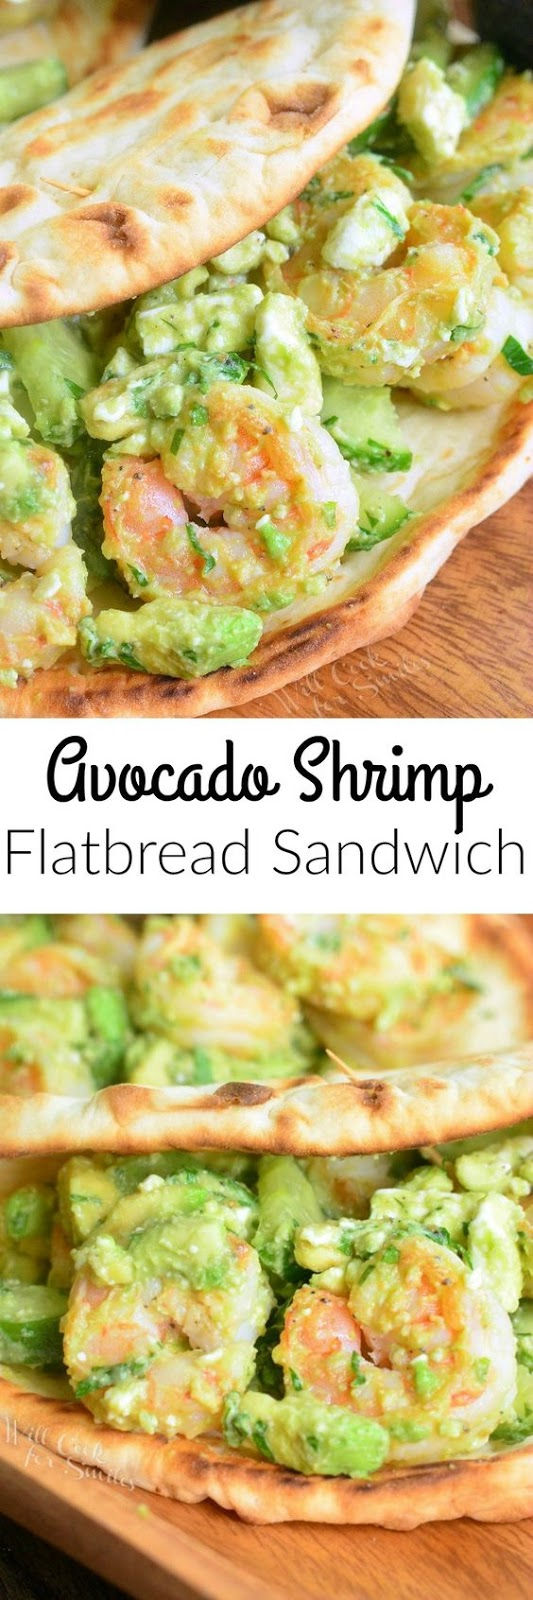 Avocado Shrimp Flatbread